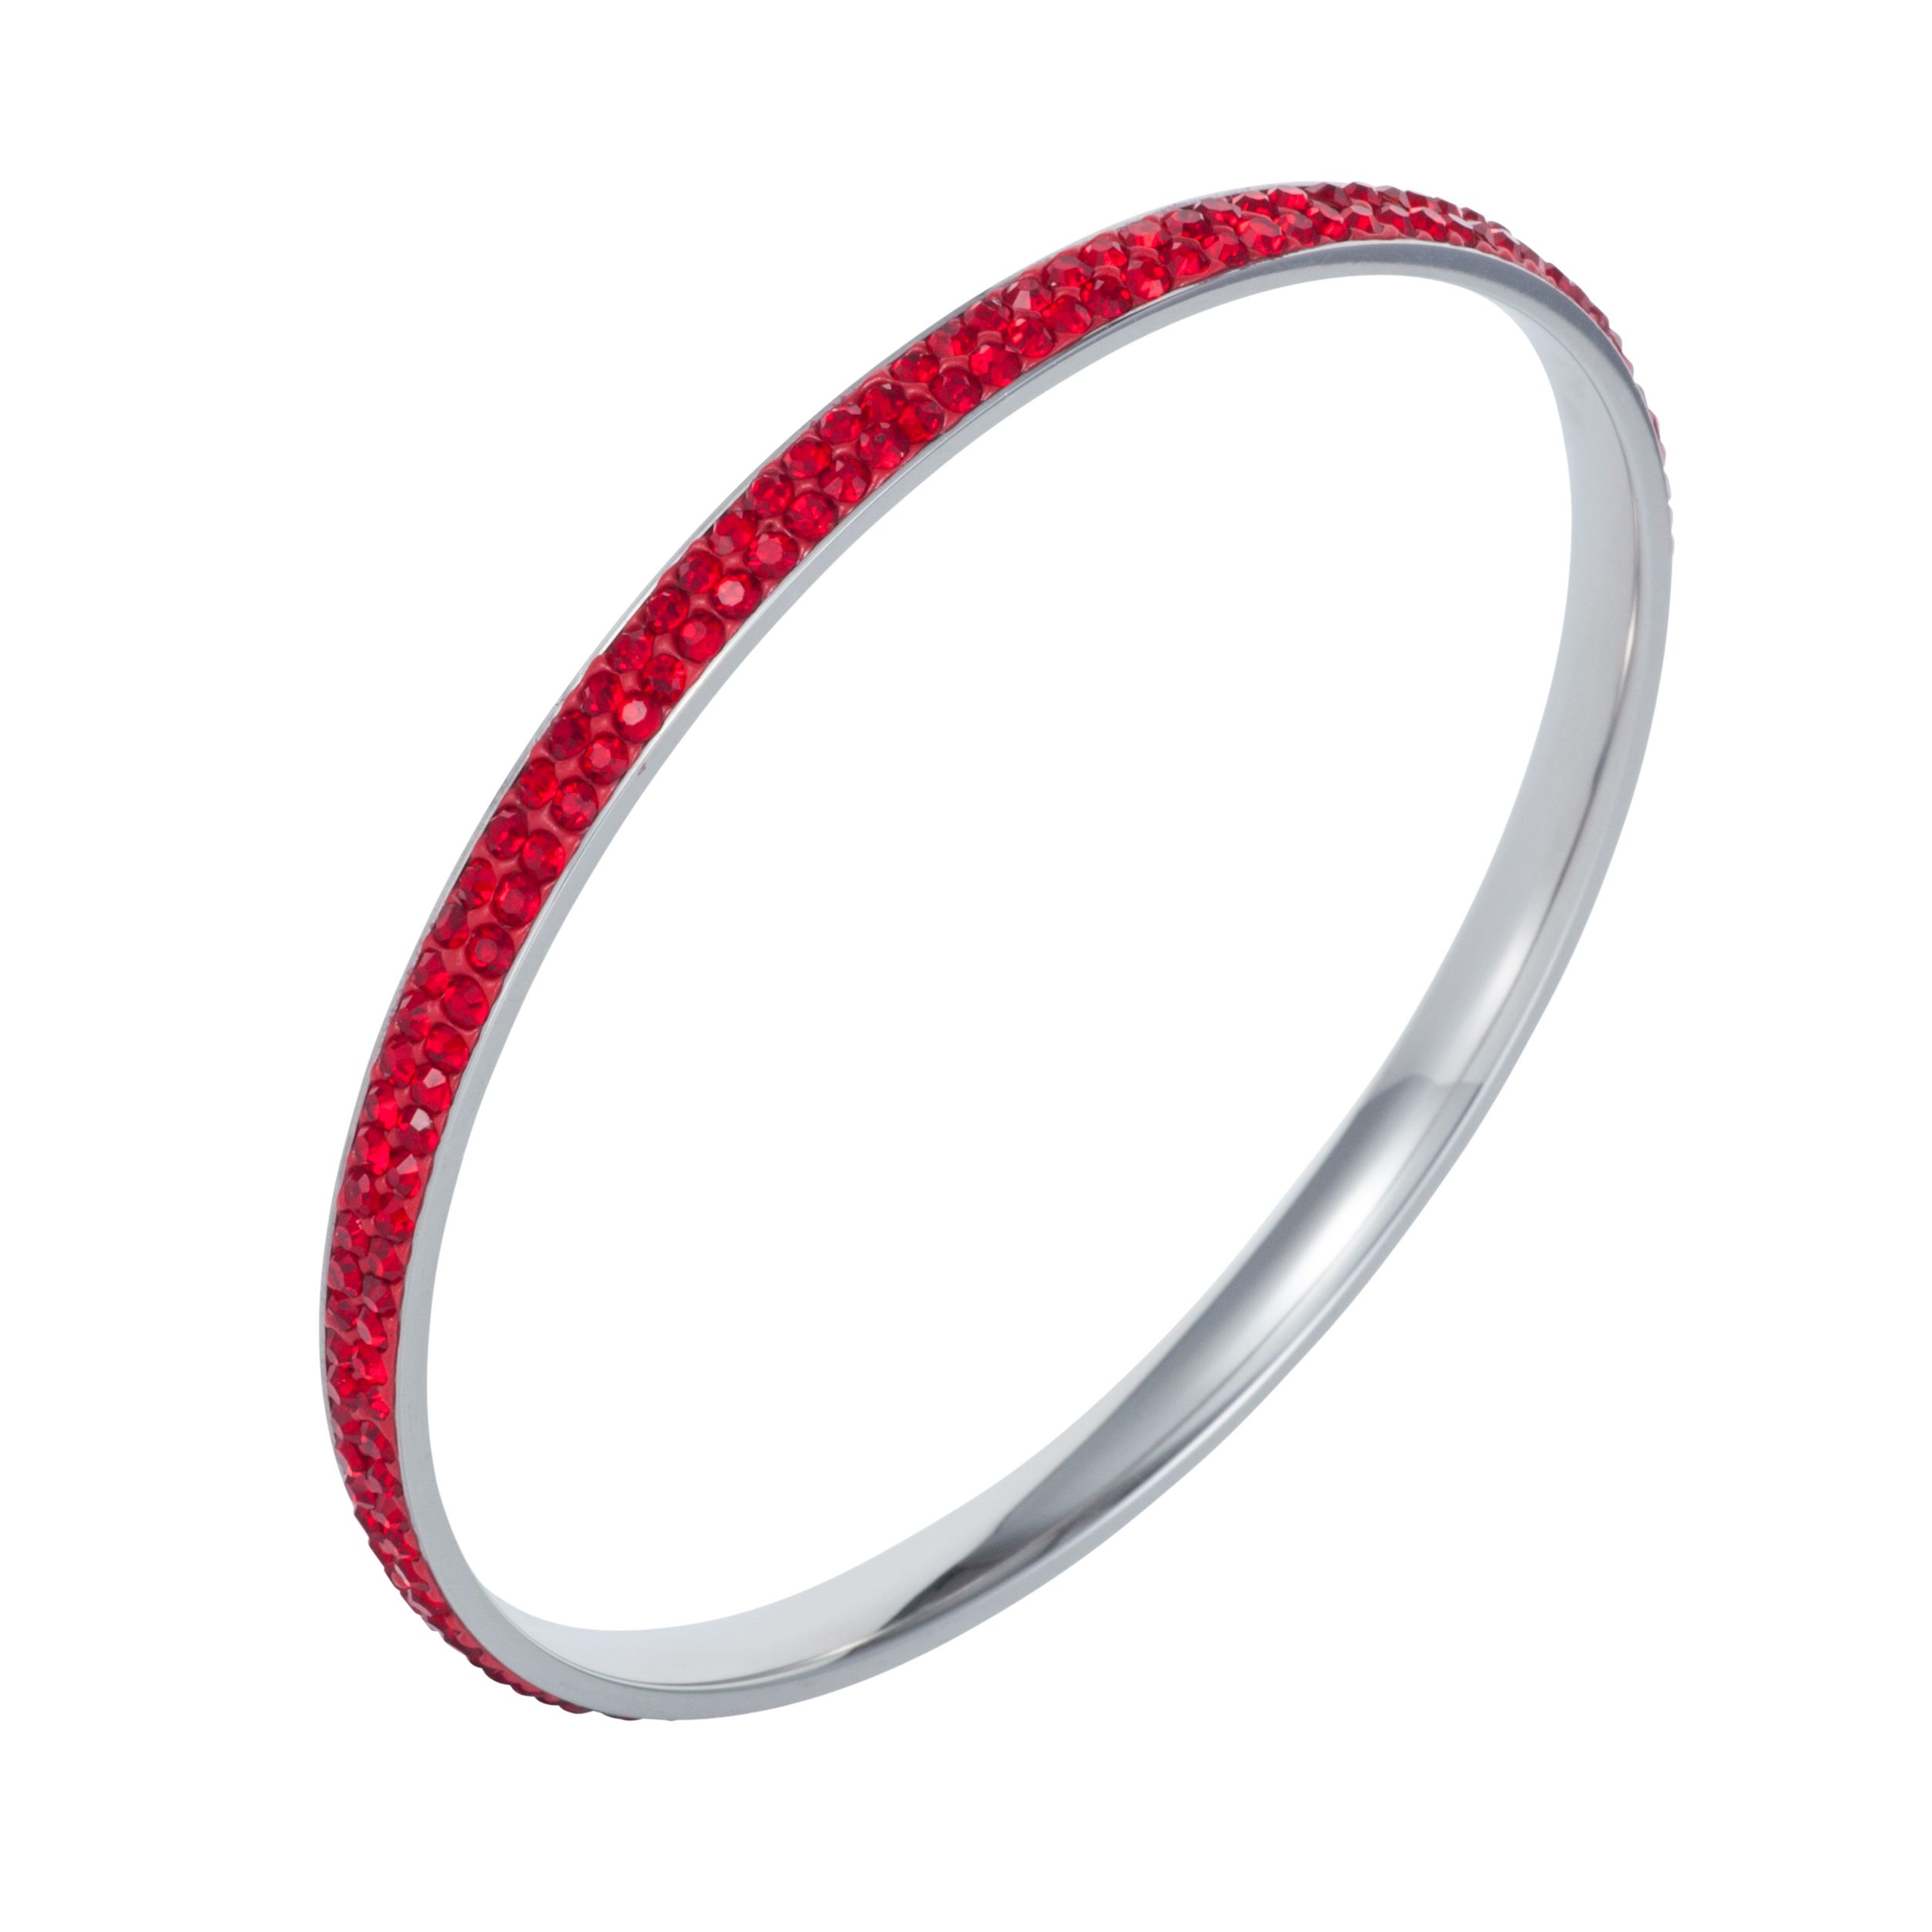 Stainless steel cubic zirconia red bangle